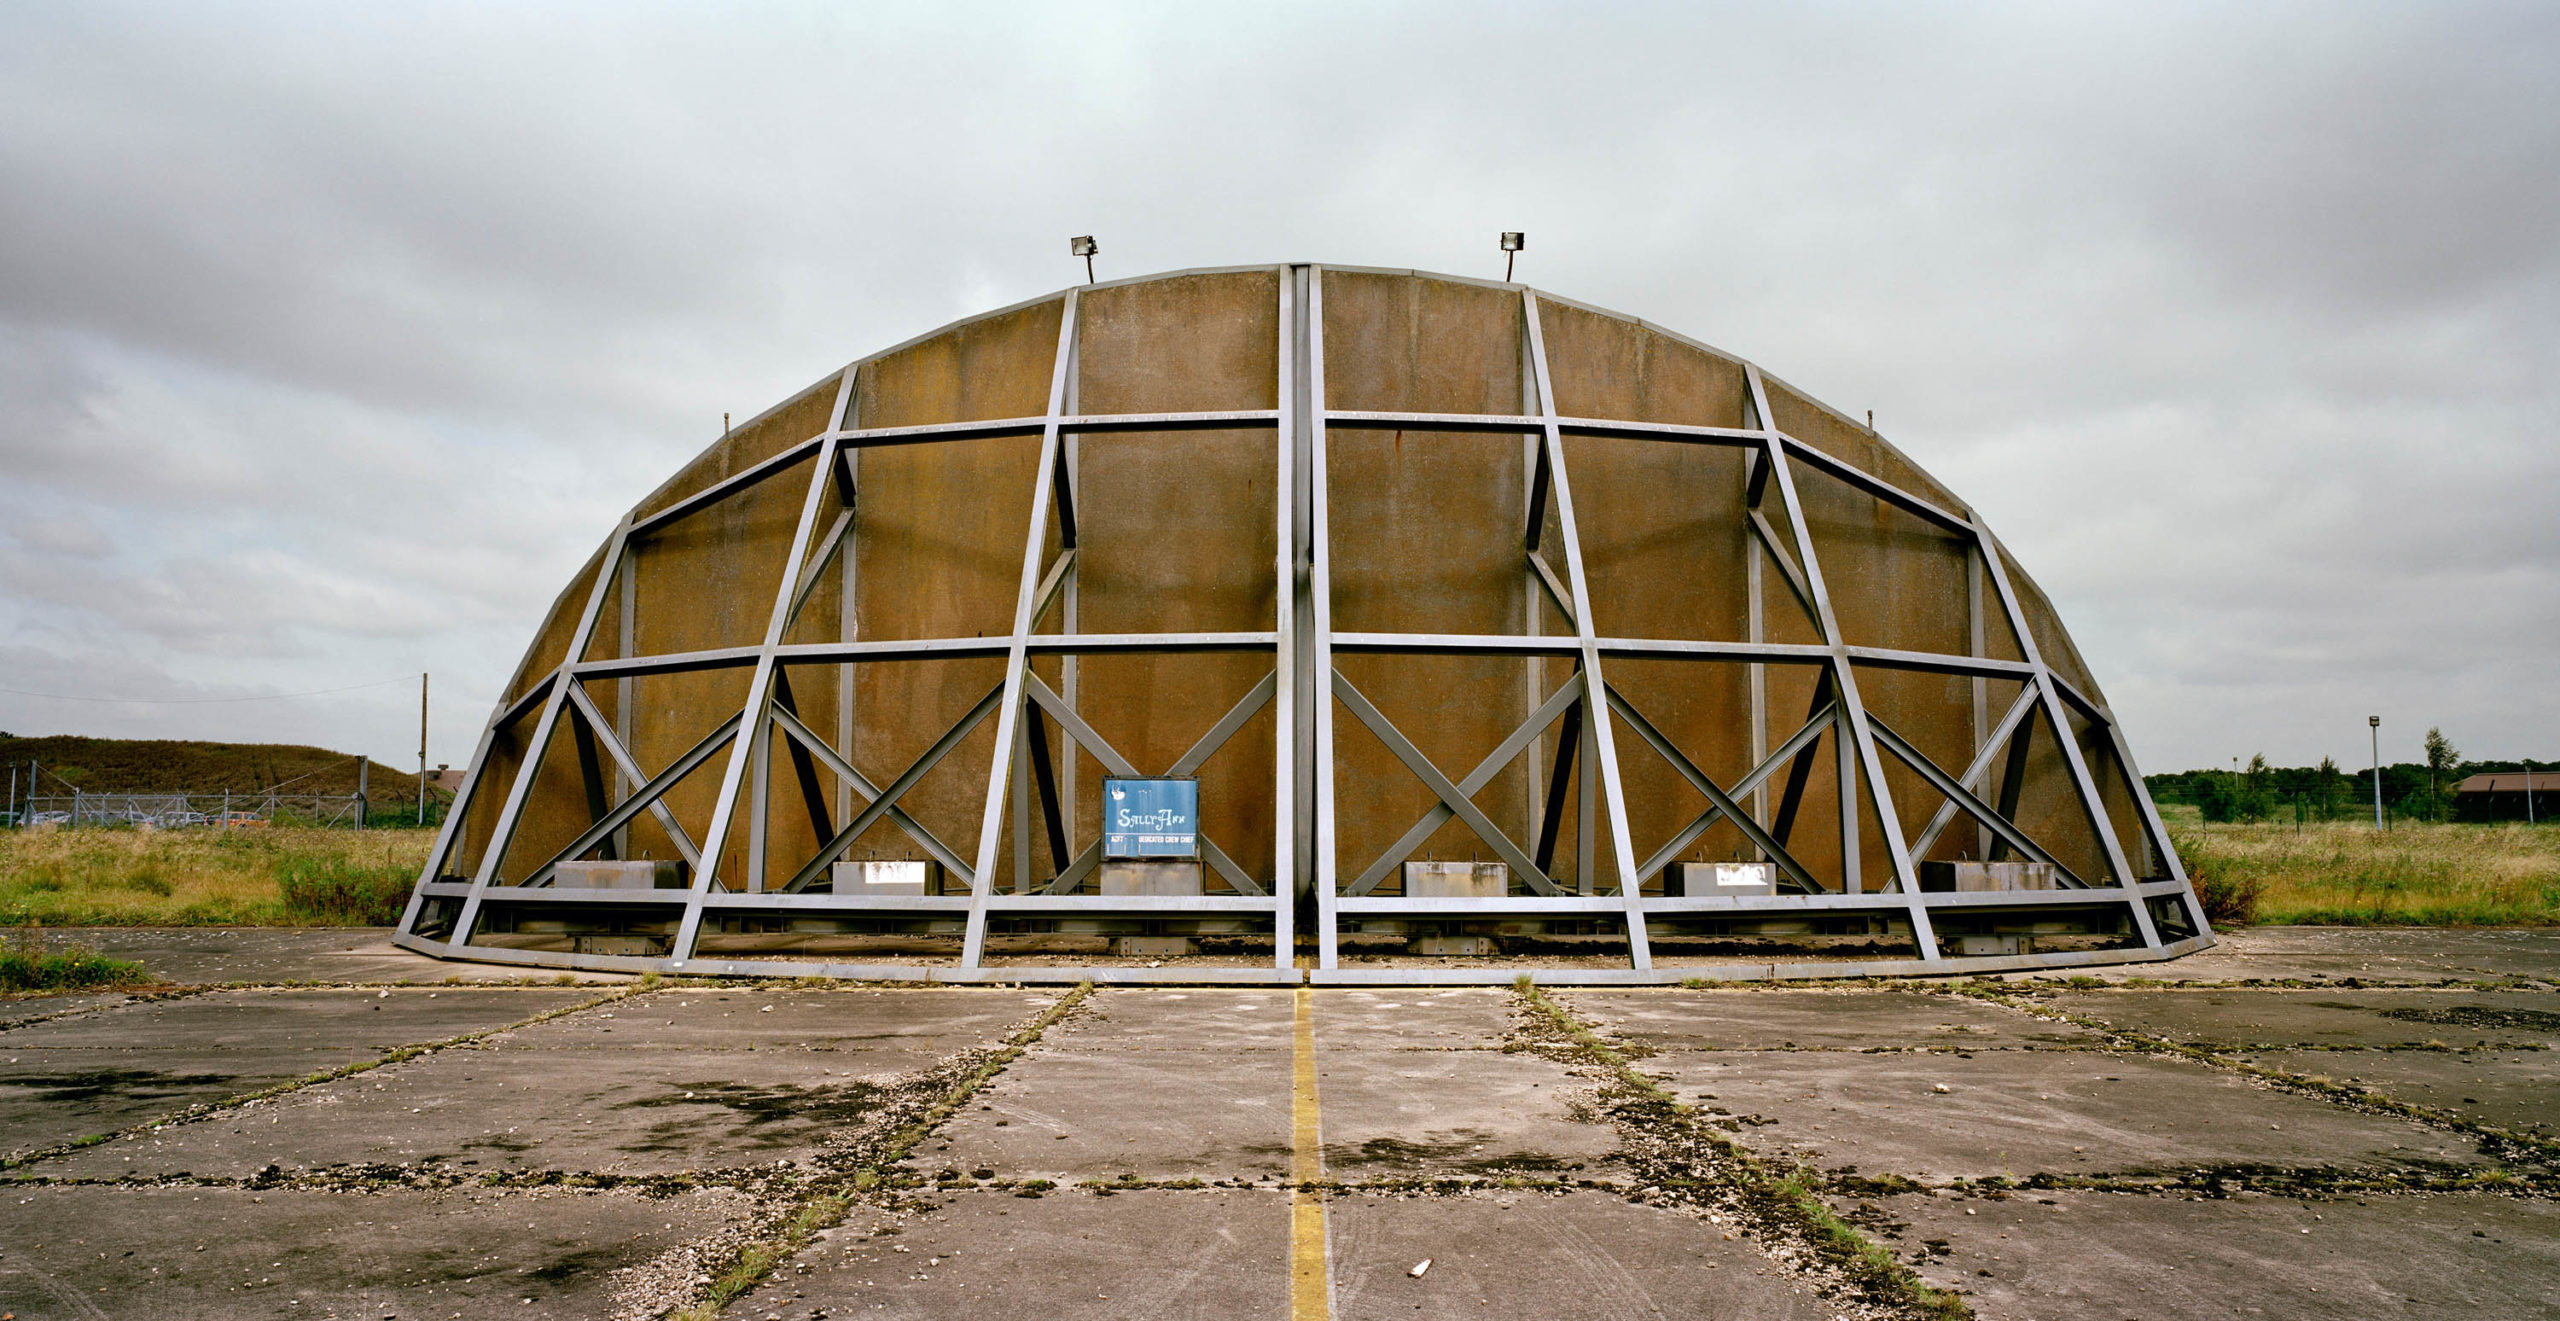 United Kingdom. Airplane shelter at a US Air Force base